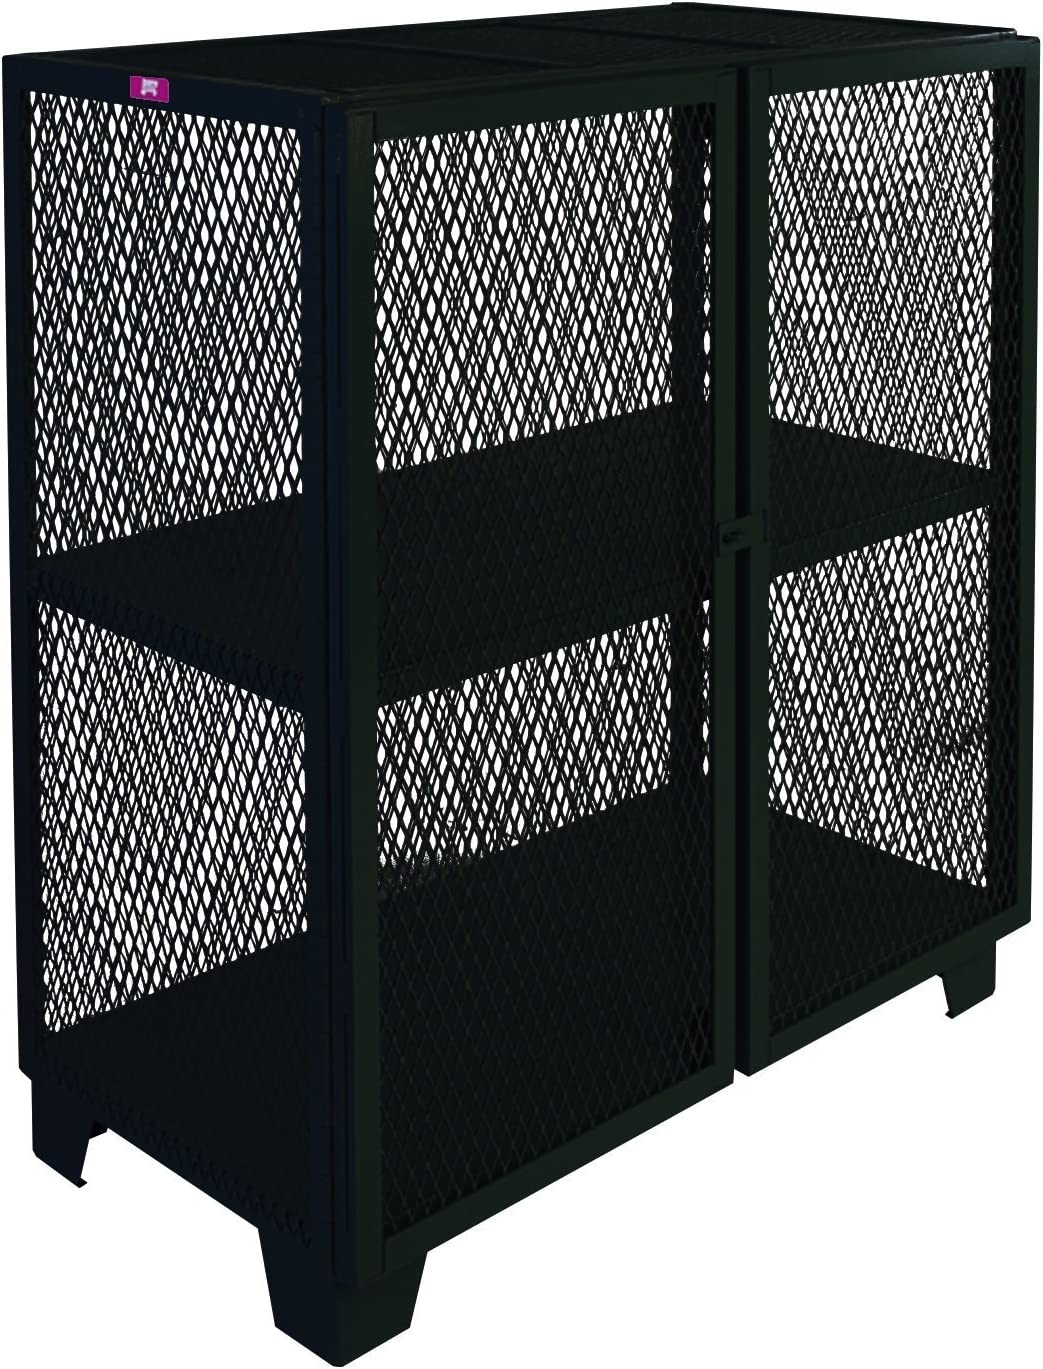 Jamco Products Inc MB460-BL Stationary Security Mesh Max 56% OFF 36 Max 87% OFF Cabinet